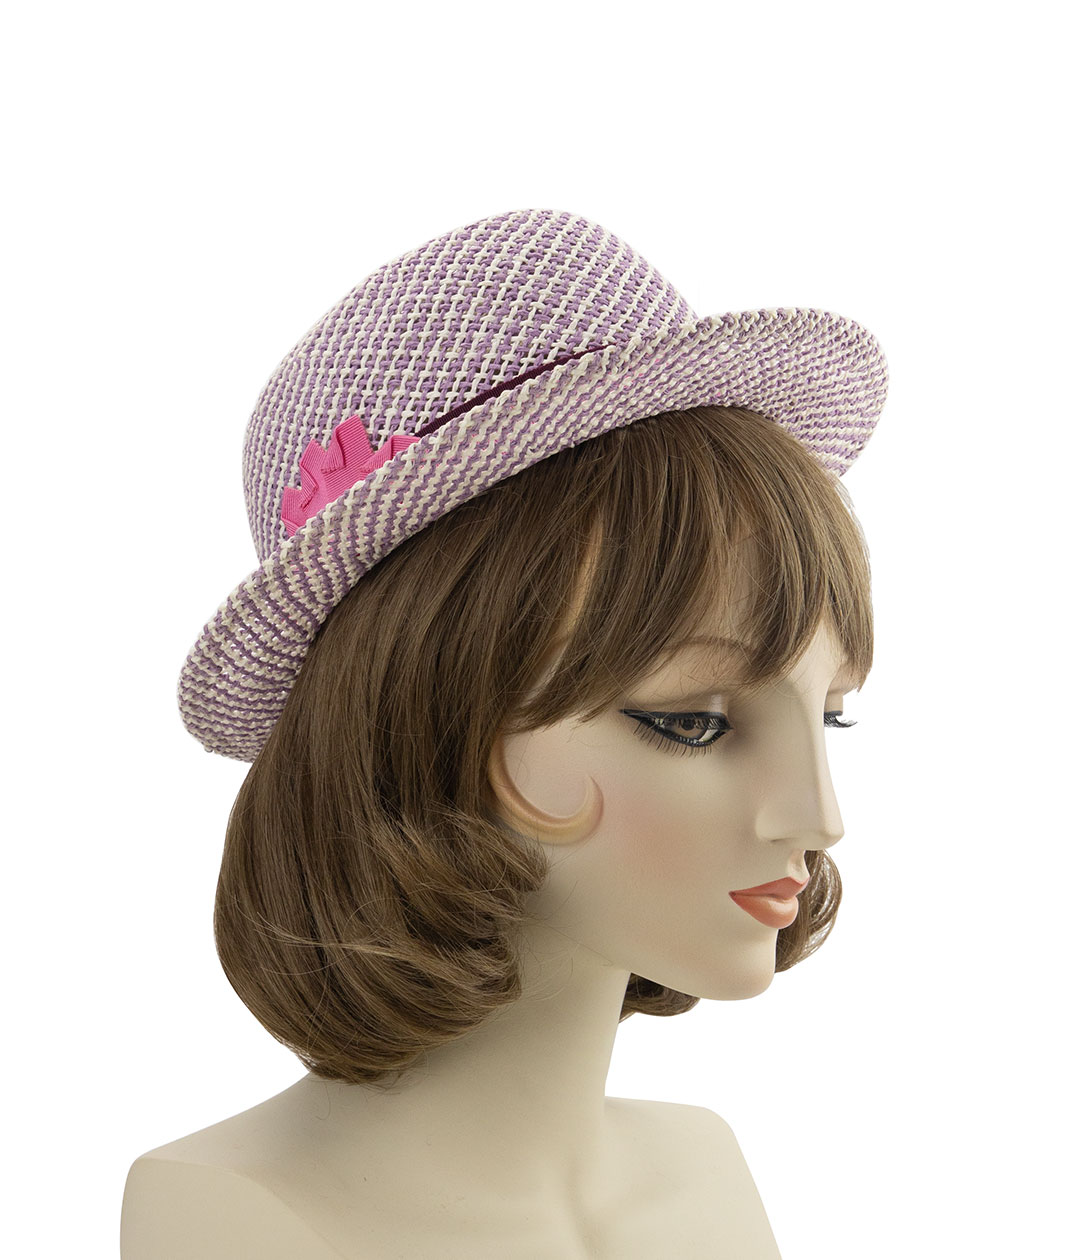 purple straw hat tilted back on the head